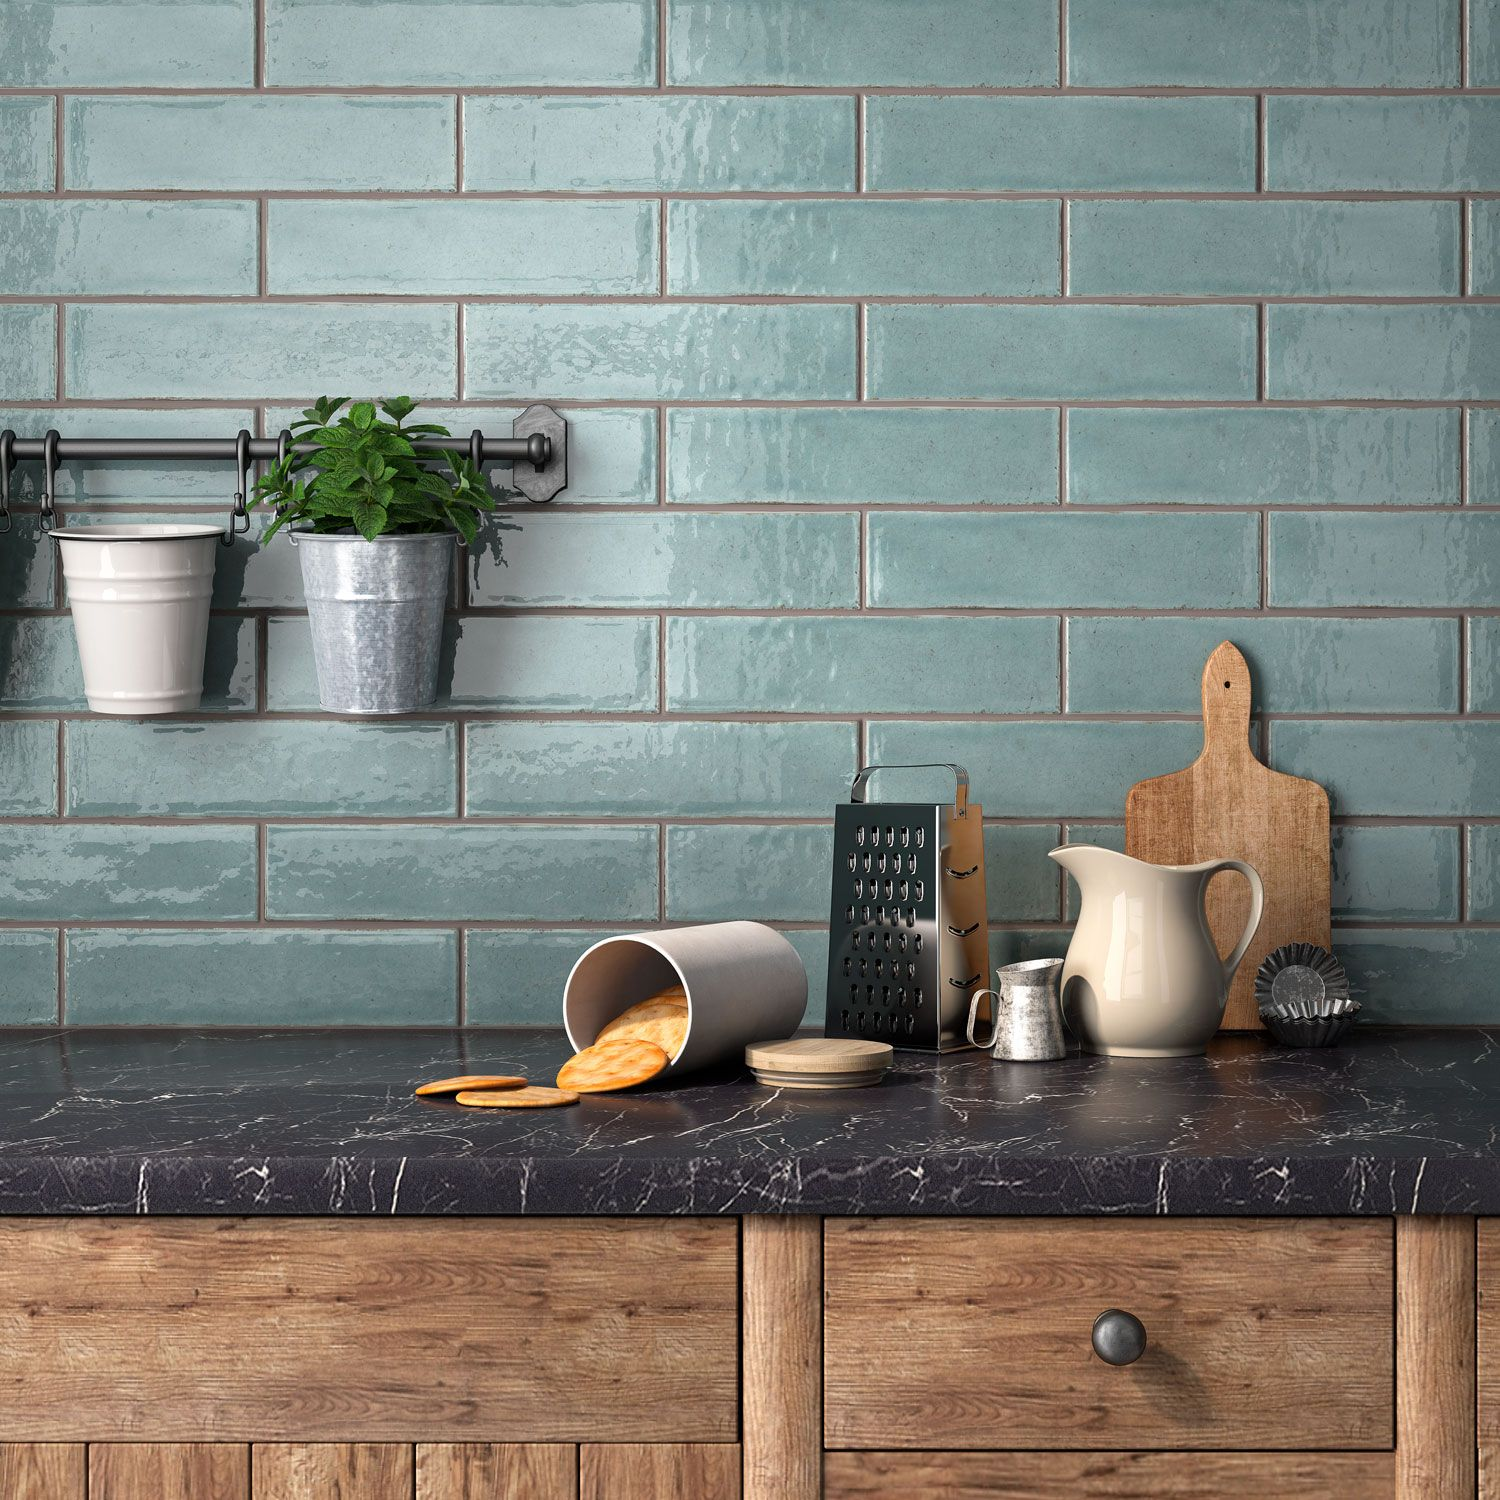 Blue Greens Are Trending Right Now And This Delicious Aqua Ceramic Tile Hits All The Right Notes Kitchen Wall Tiles Blue Backsplash Kitchen Beautiful Kitchens